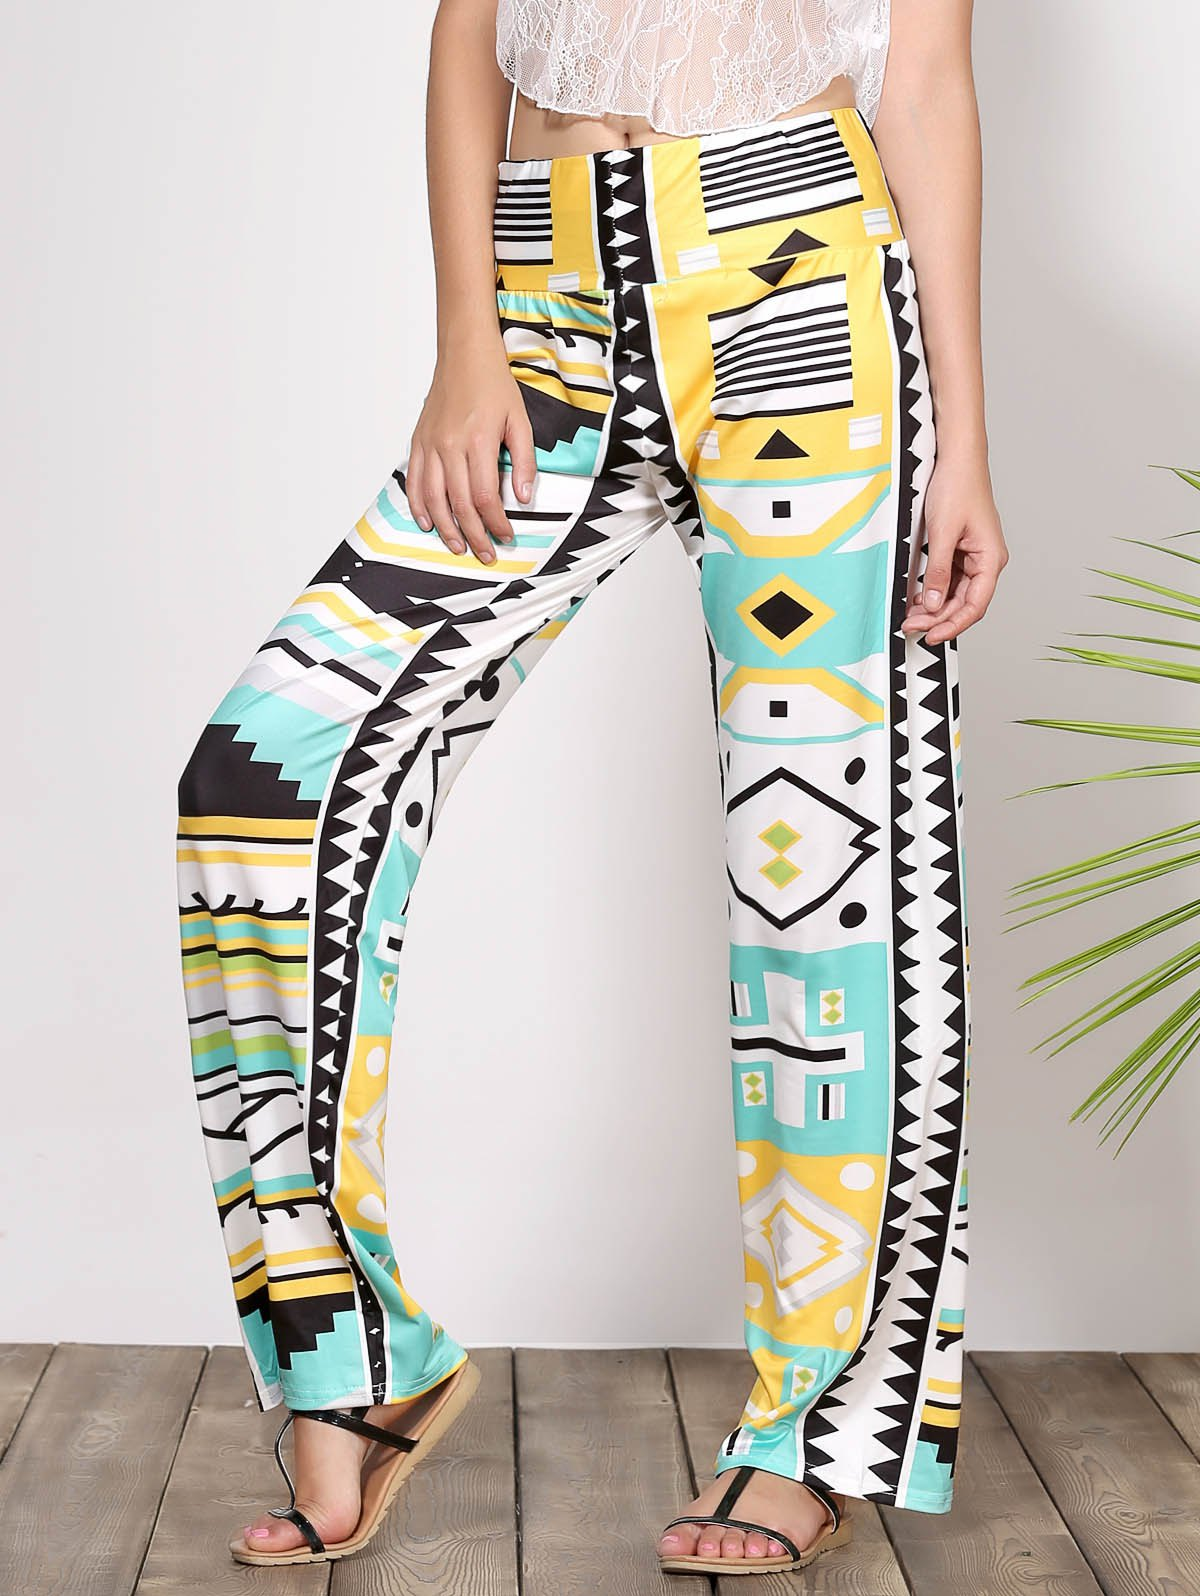 Stylish Mid-Waisted Loose-Fitting Geometric Print Women's Exumas Pants - COLORMIX L